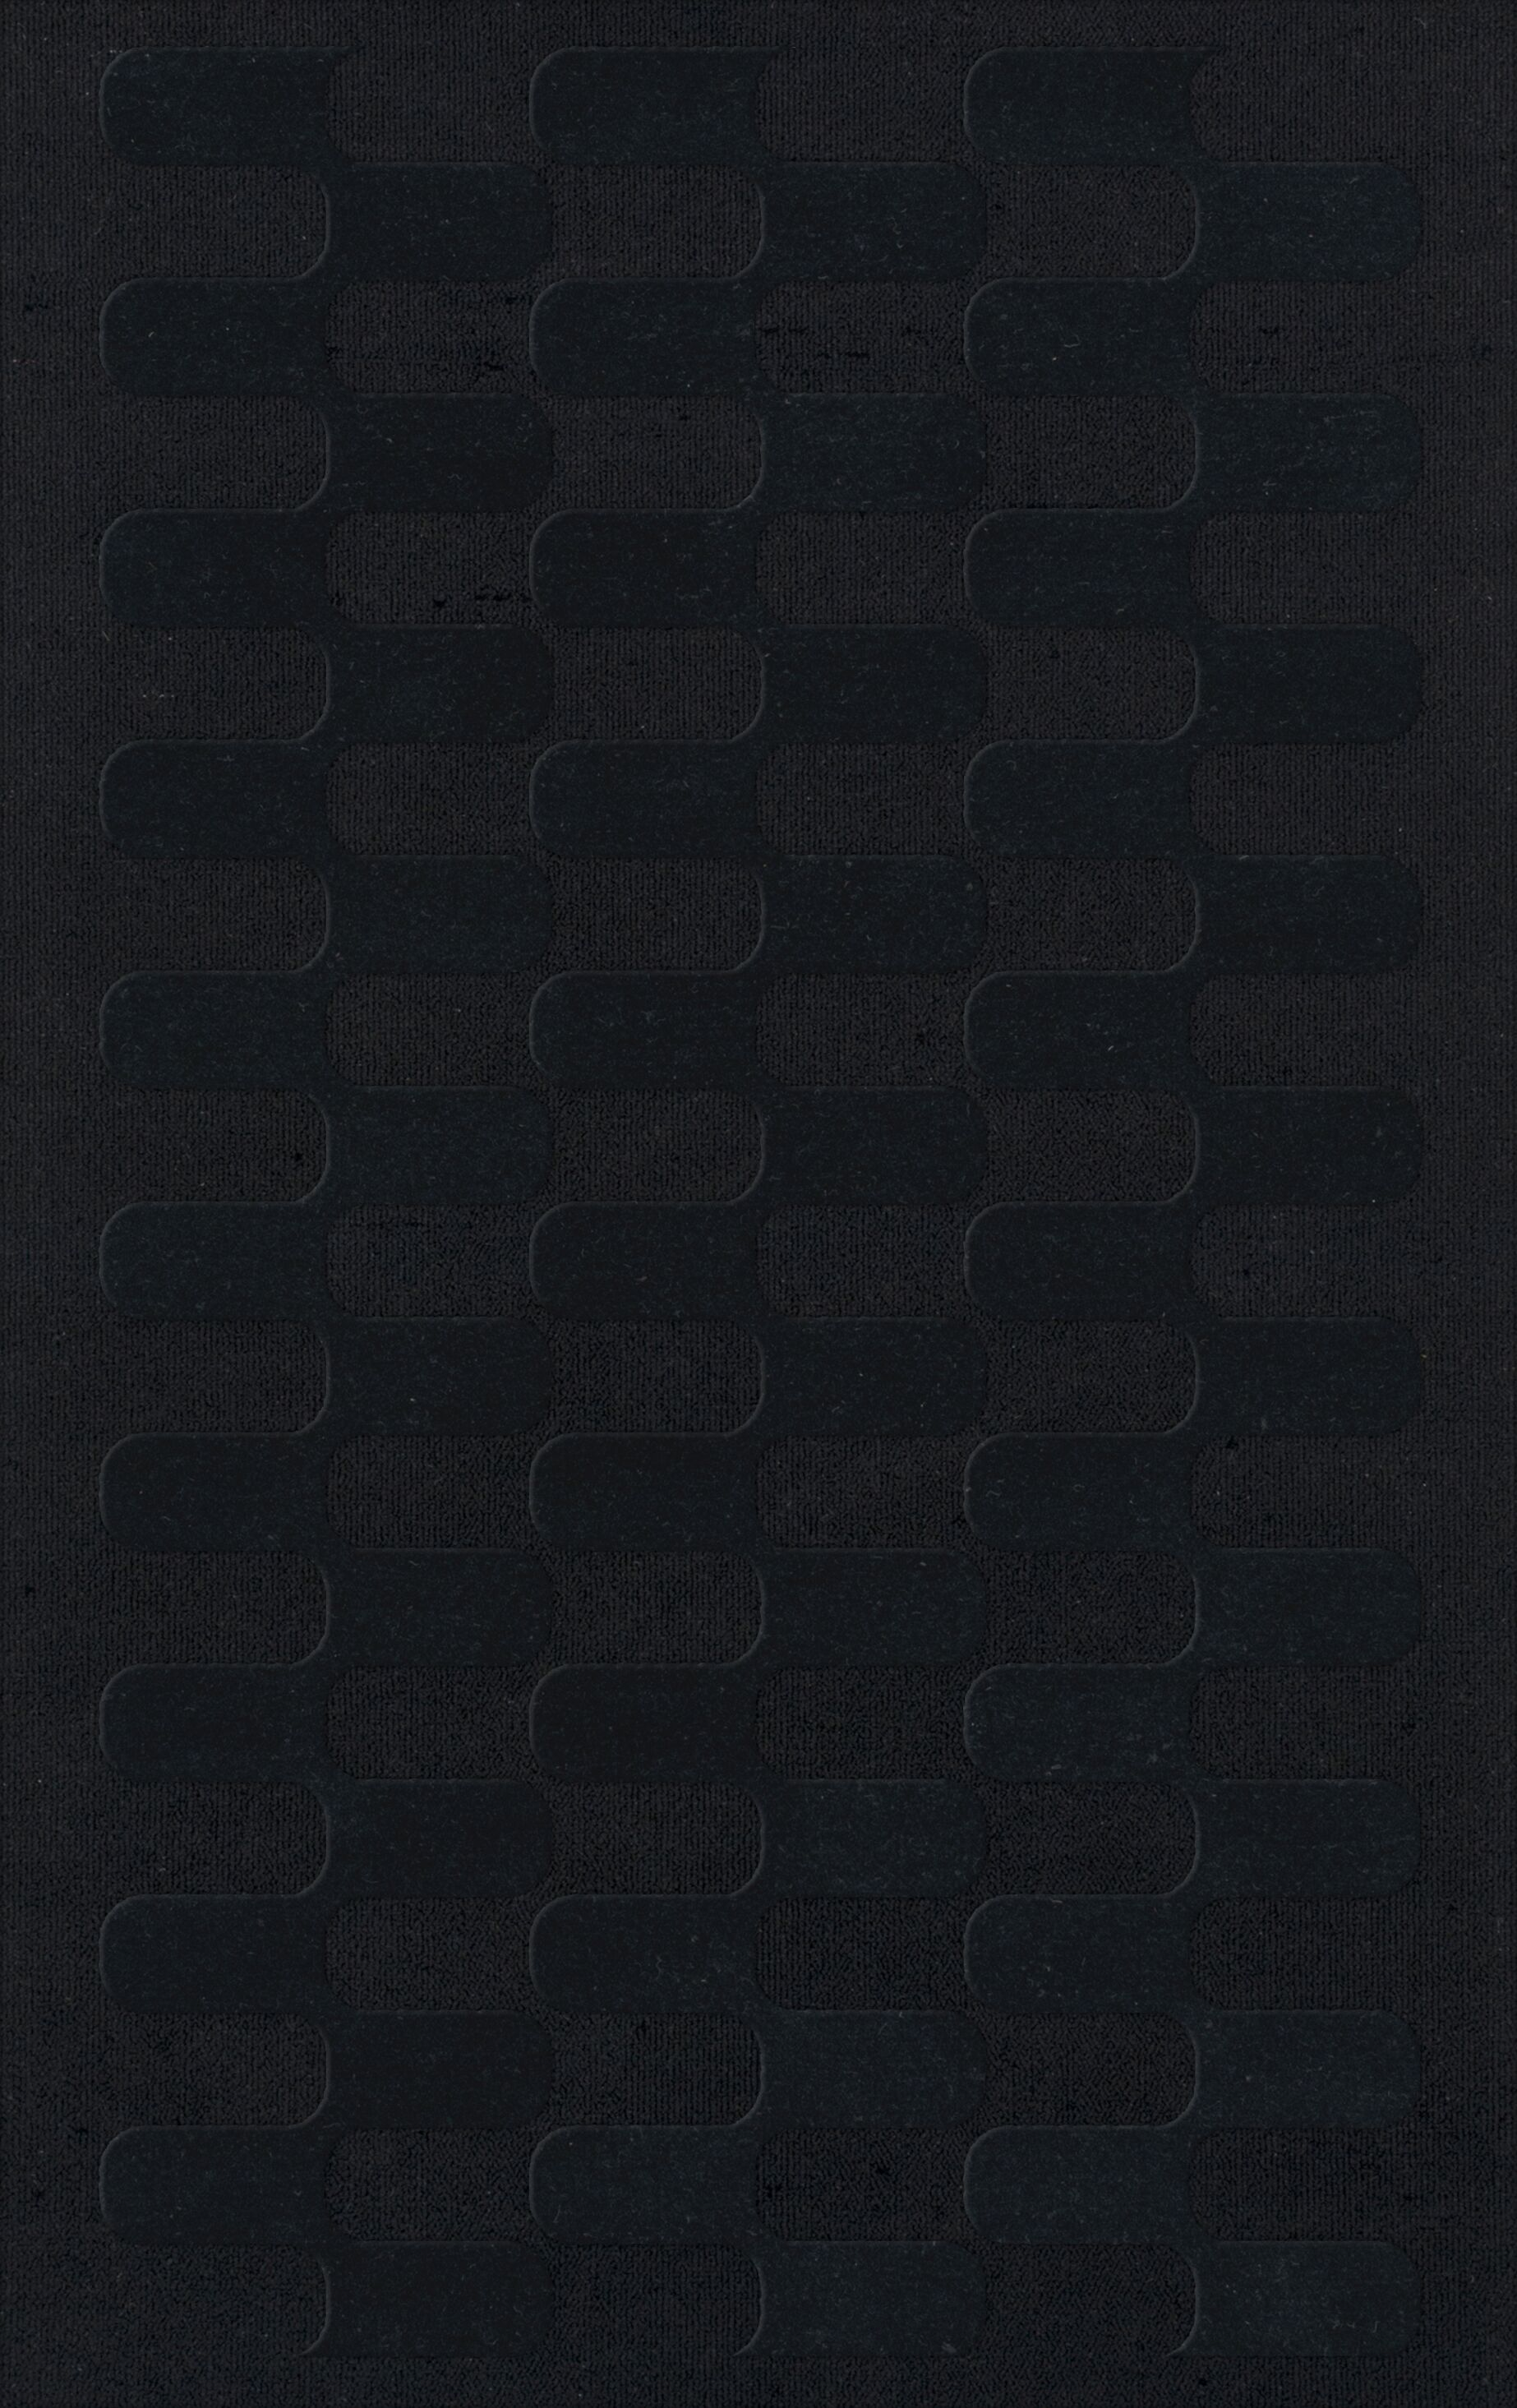 Dover Black Area Rug Rug Size: Rectangle 9' x 12'